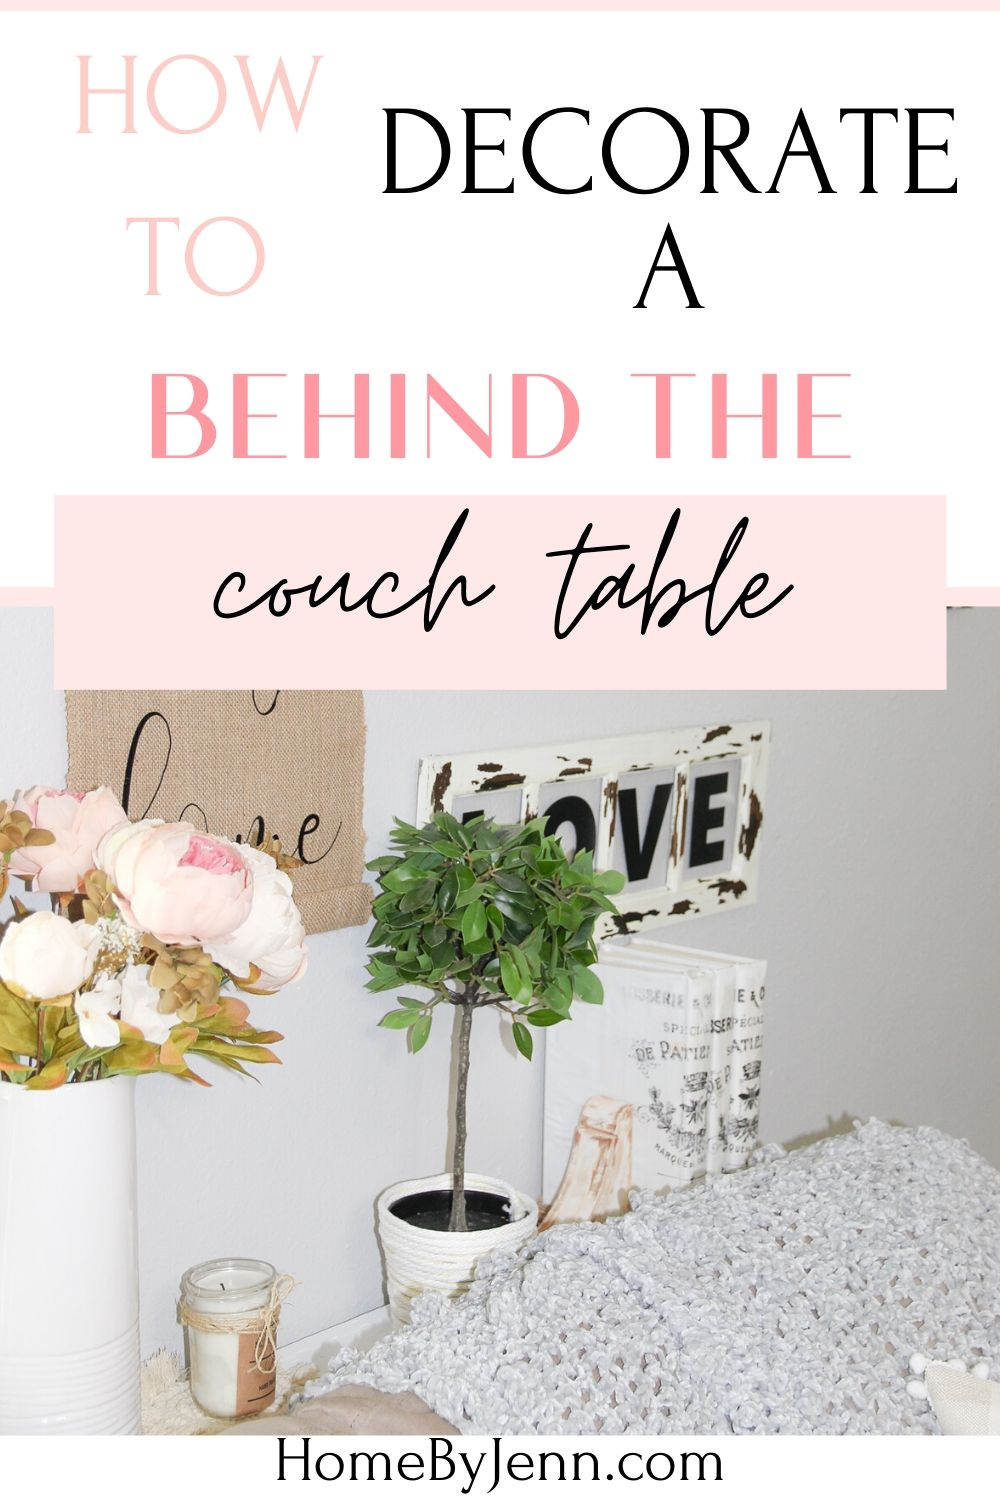 a decorated behind the couch table via @homebyjenn